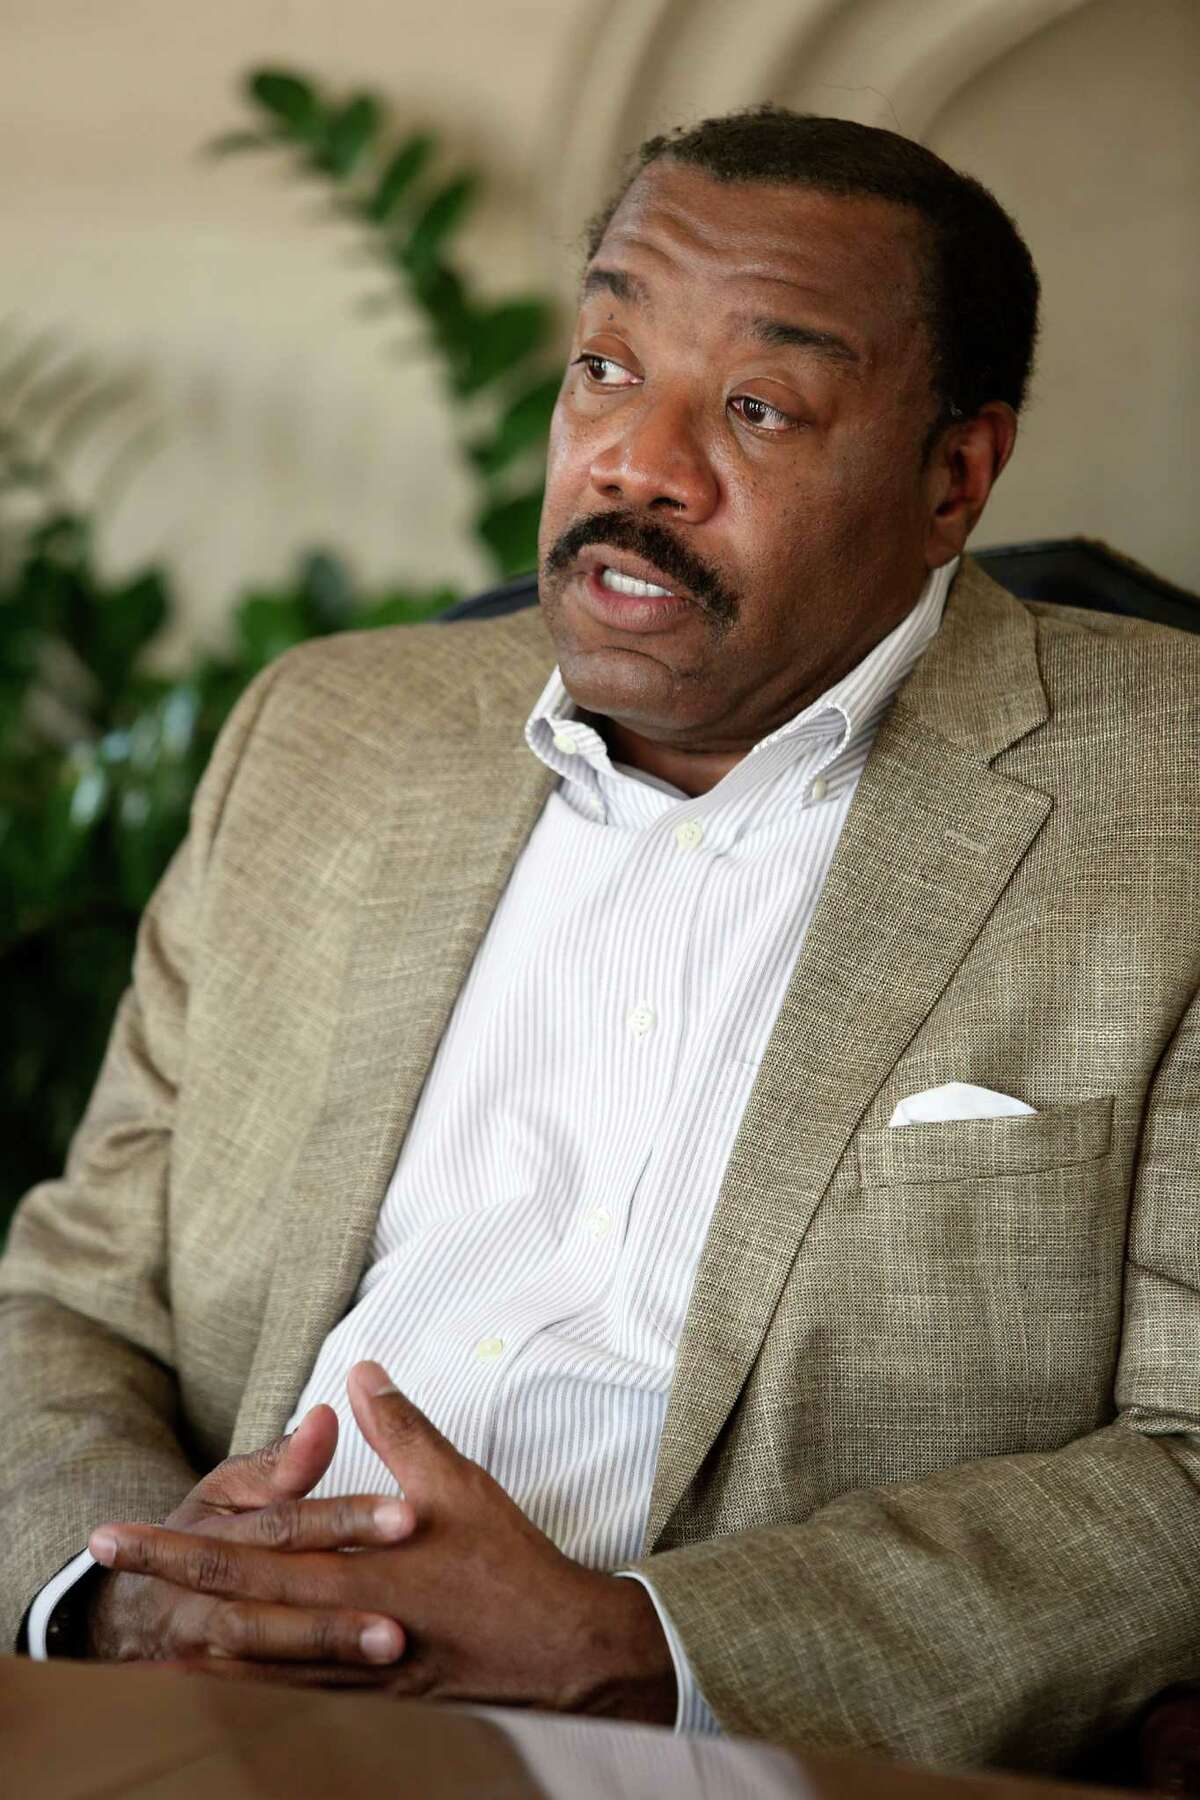 Doyle Beneby's new job will be CEO of New Generation Power International, an independent renewable energy company.